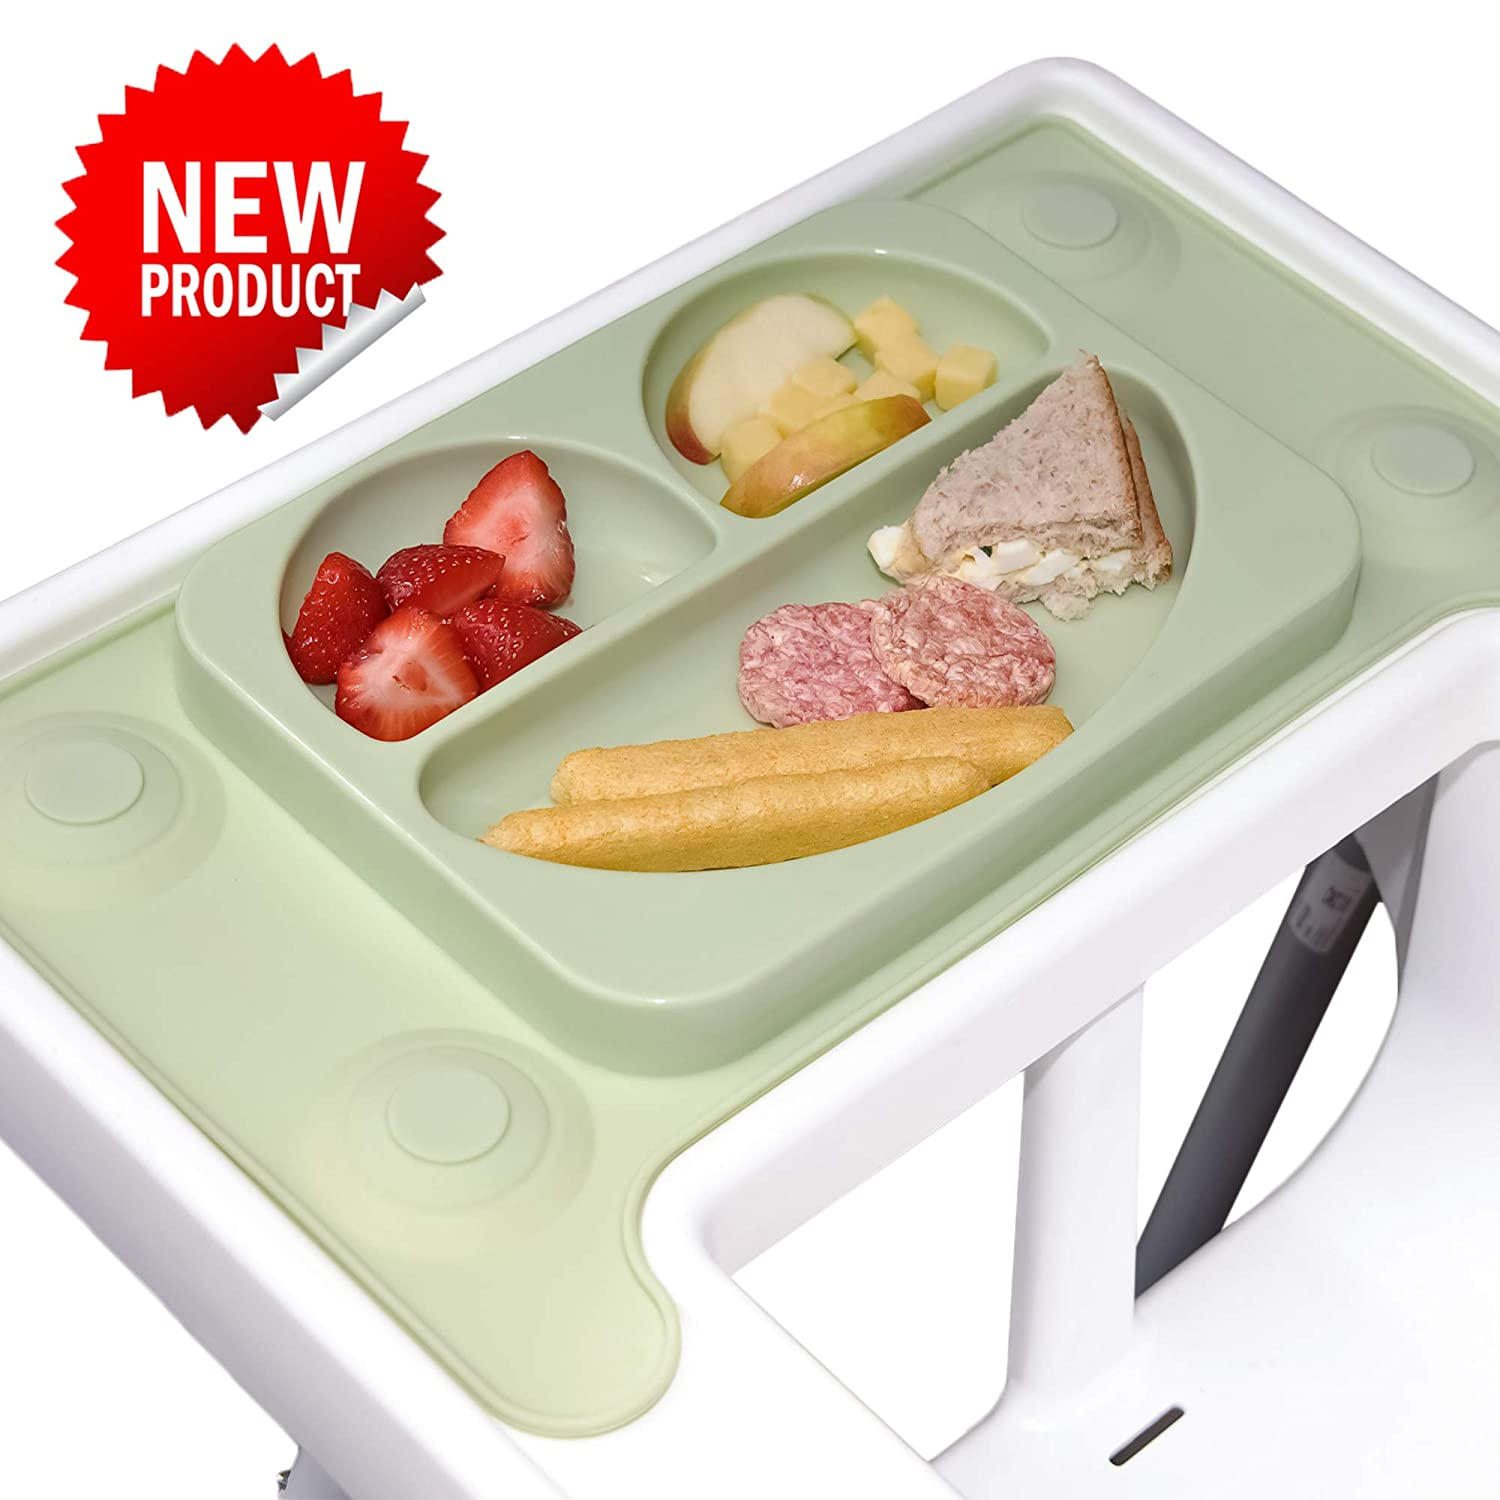 EasyMat 'Perfect Fit' Design for IKEA Antilop High Chair. Bespoke Design Baby Suction Plate and placemat. Best Accessory for Baby led weaning Made to fit The Most Popular UK high Chair (Olive) EasyTots